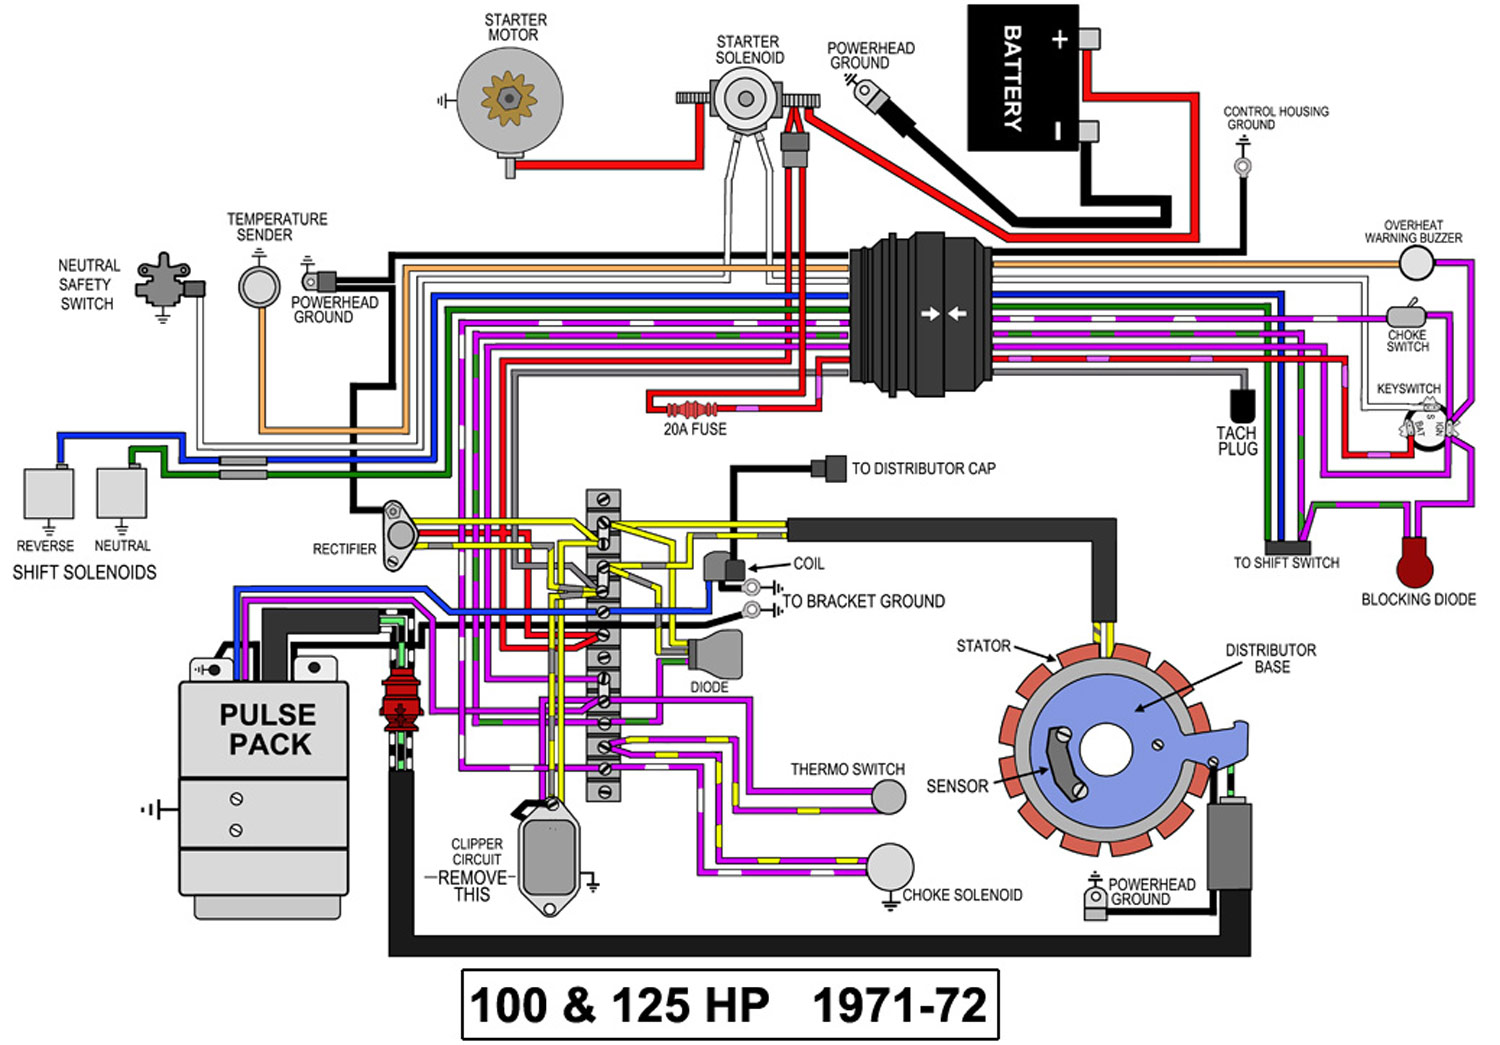 D16D1 Wiring Diagram Johnson 50 Hp Outboard | Wiring ResourcesWiring Resources